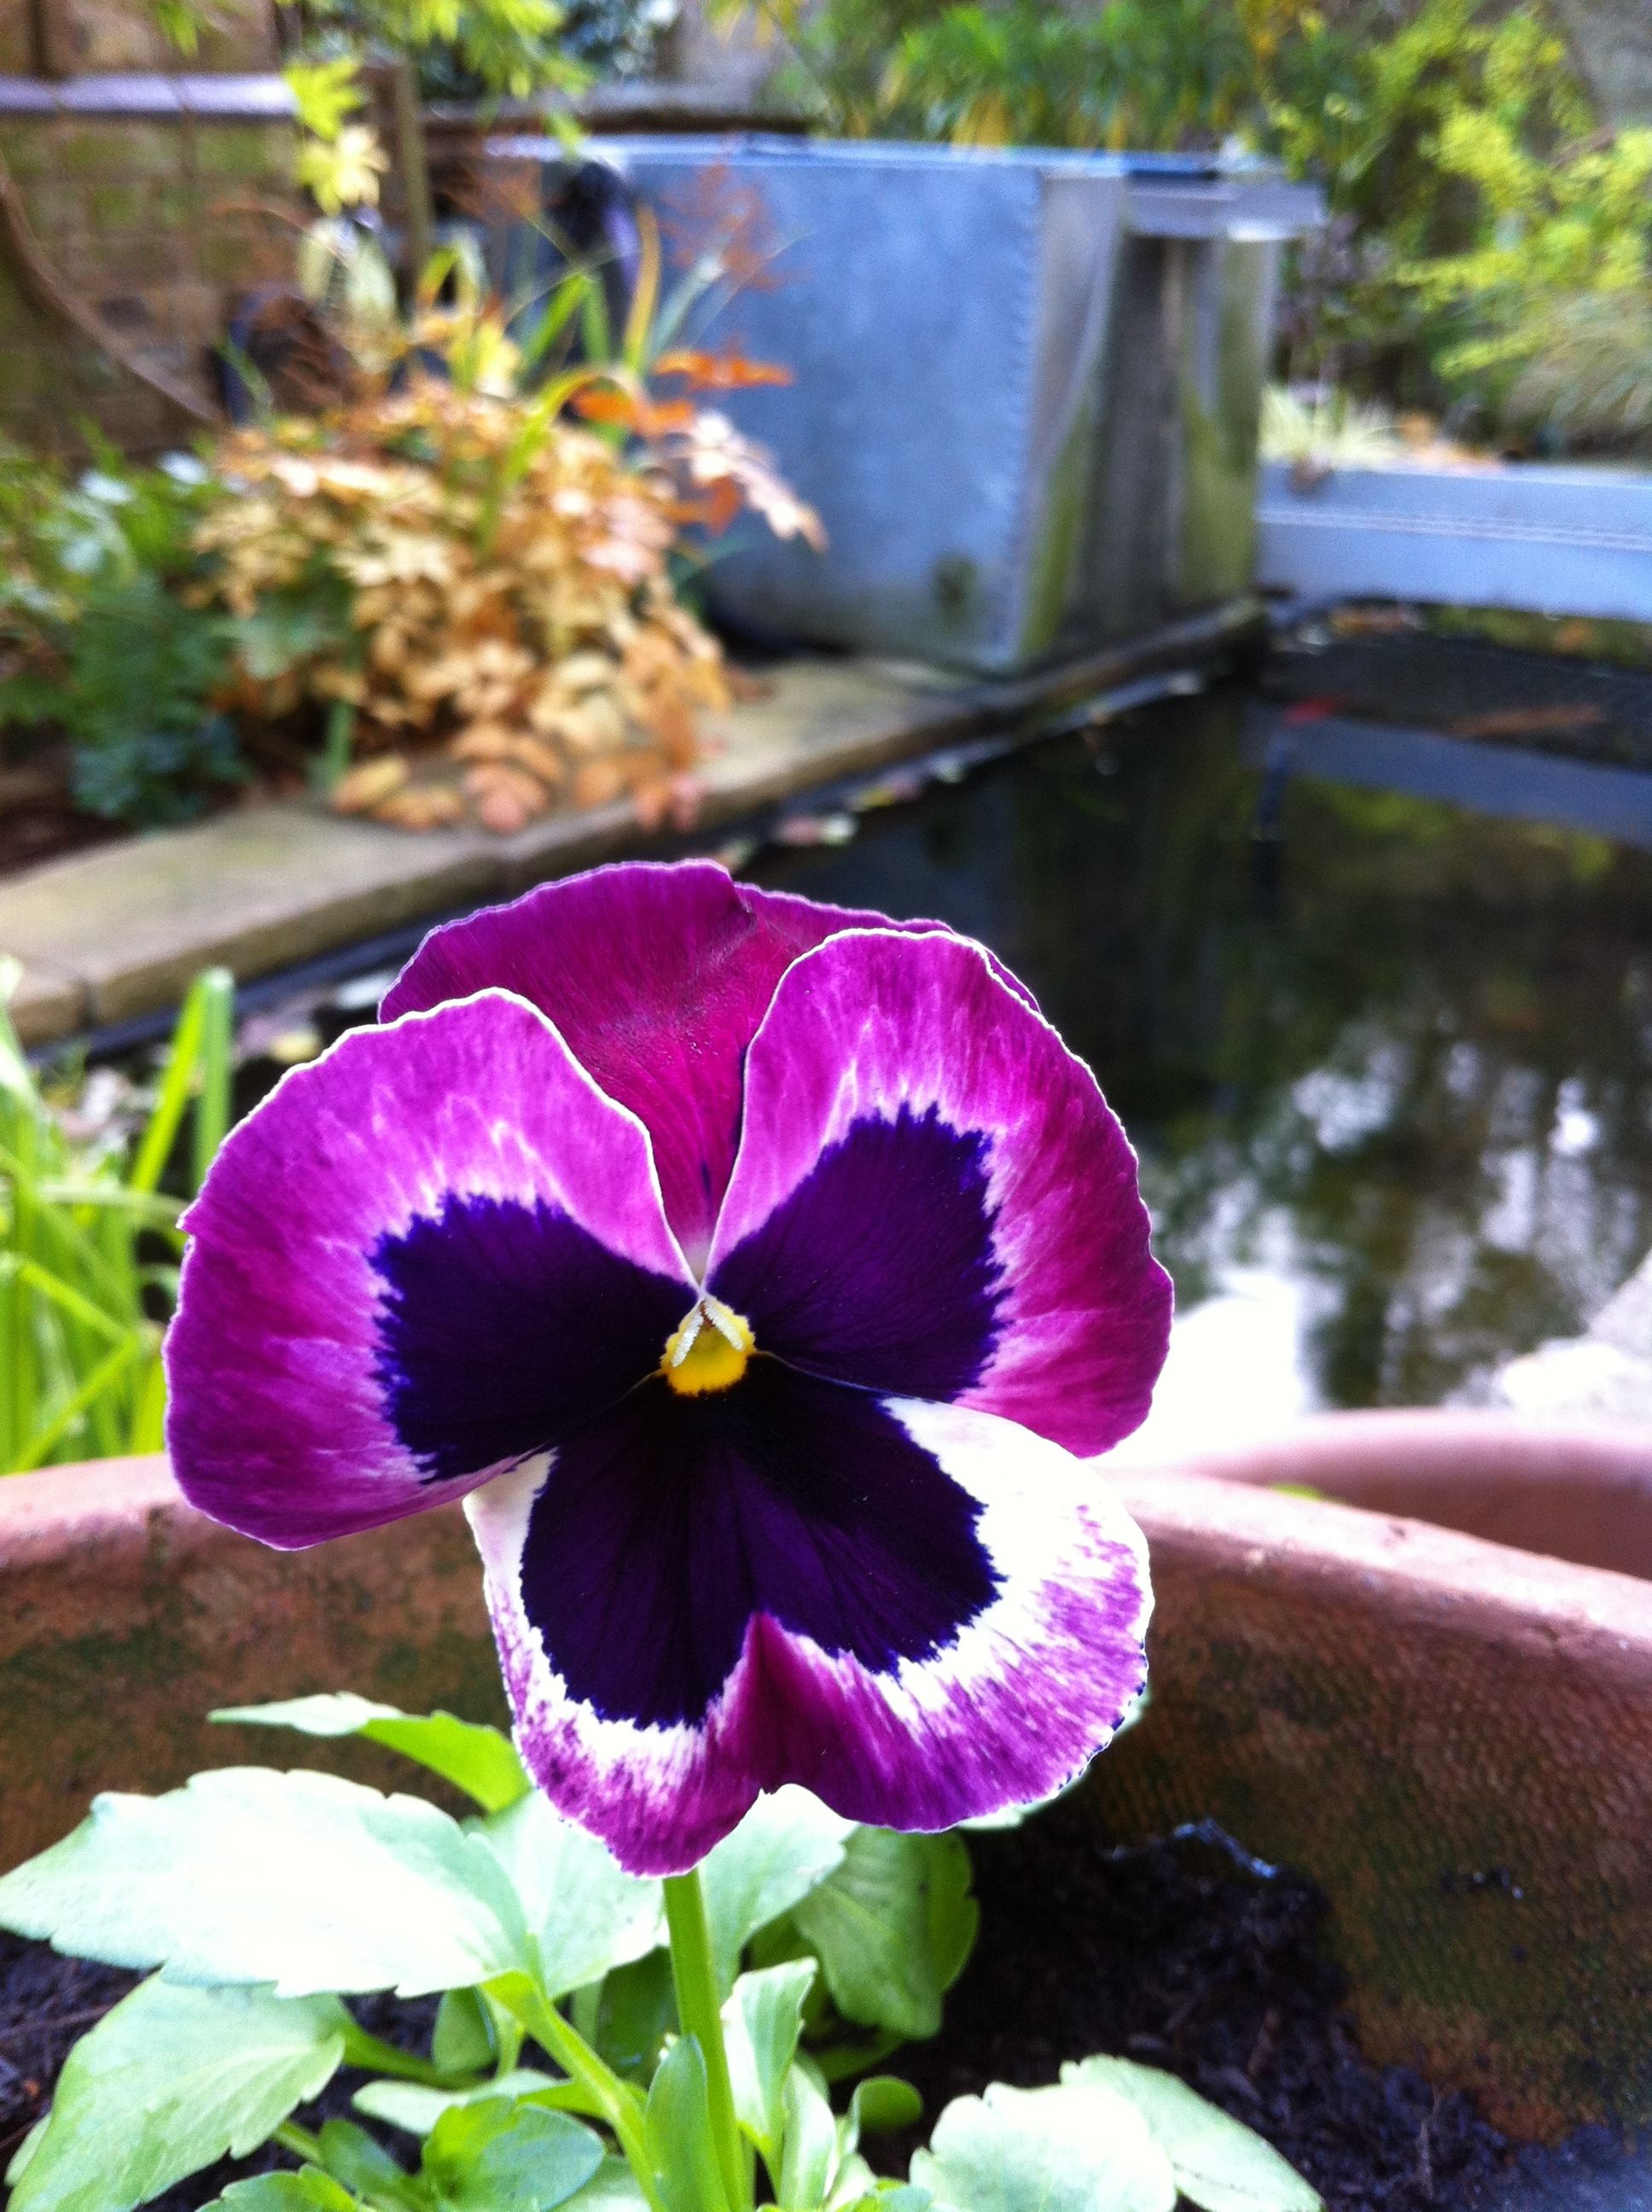 Pansy 'Matrix Cassis', November 30th 2013